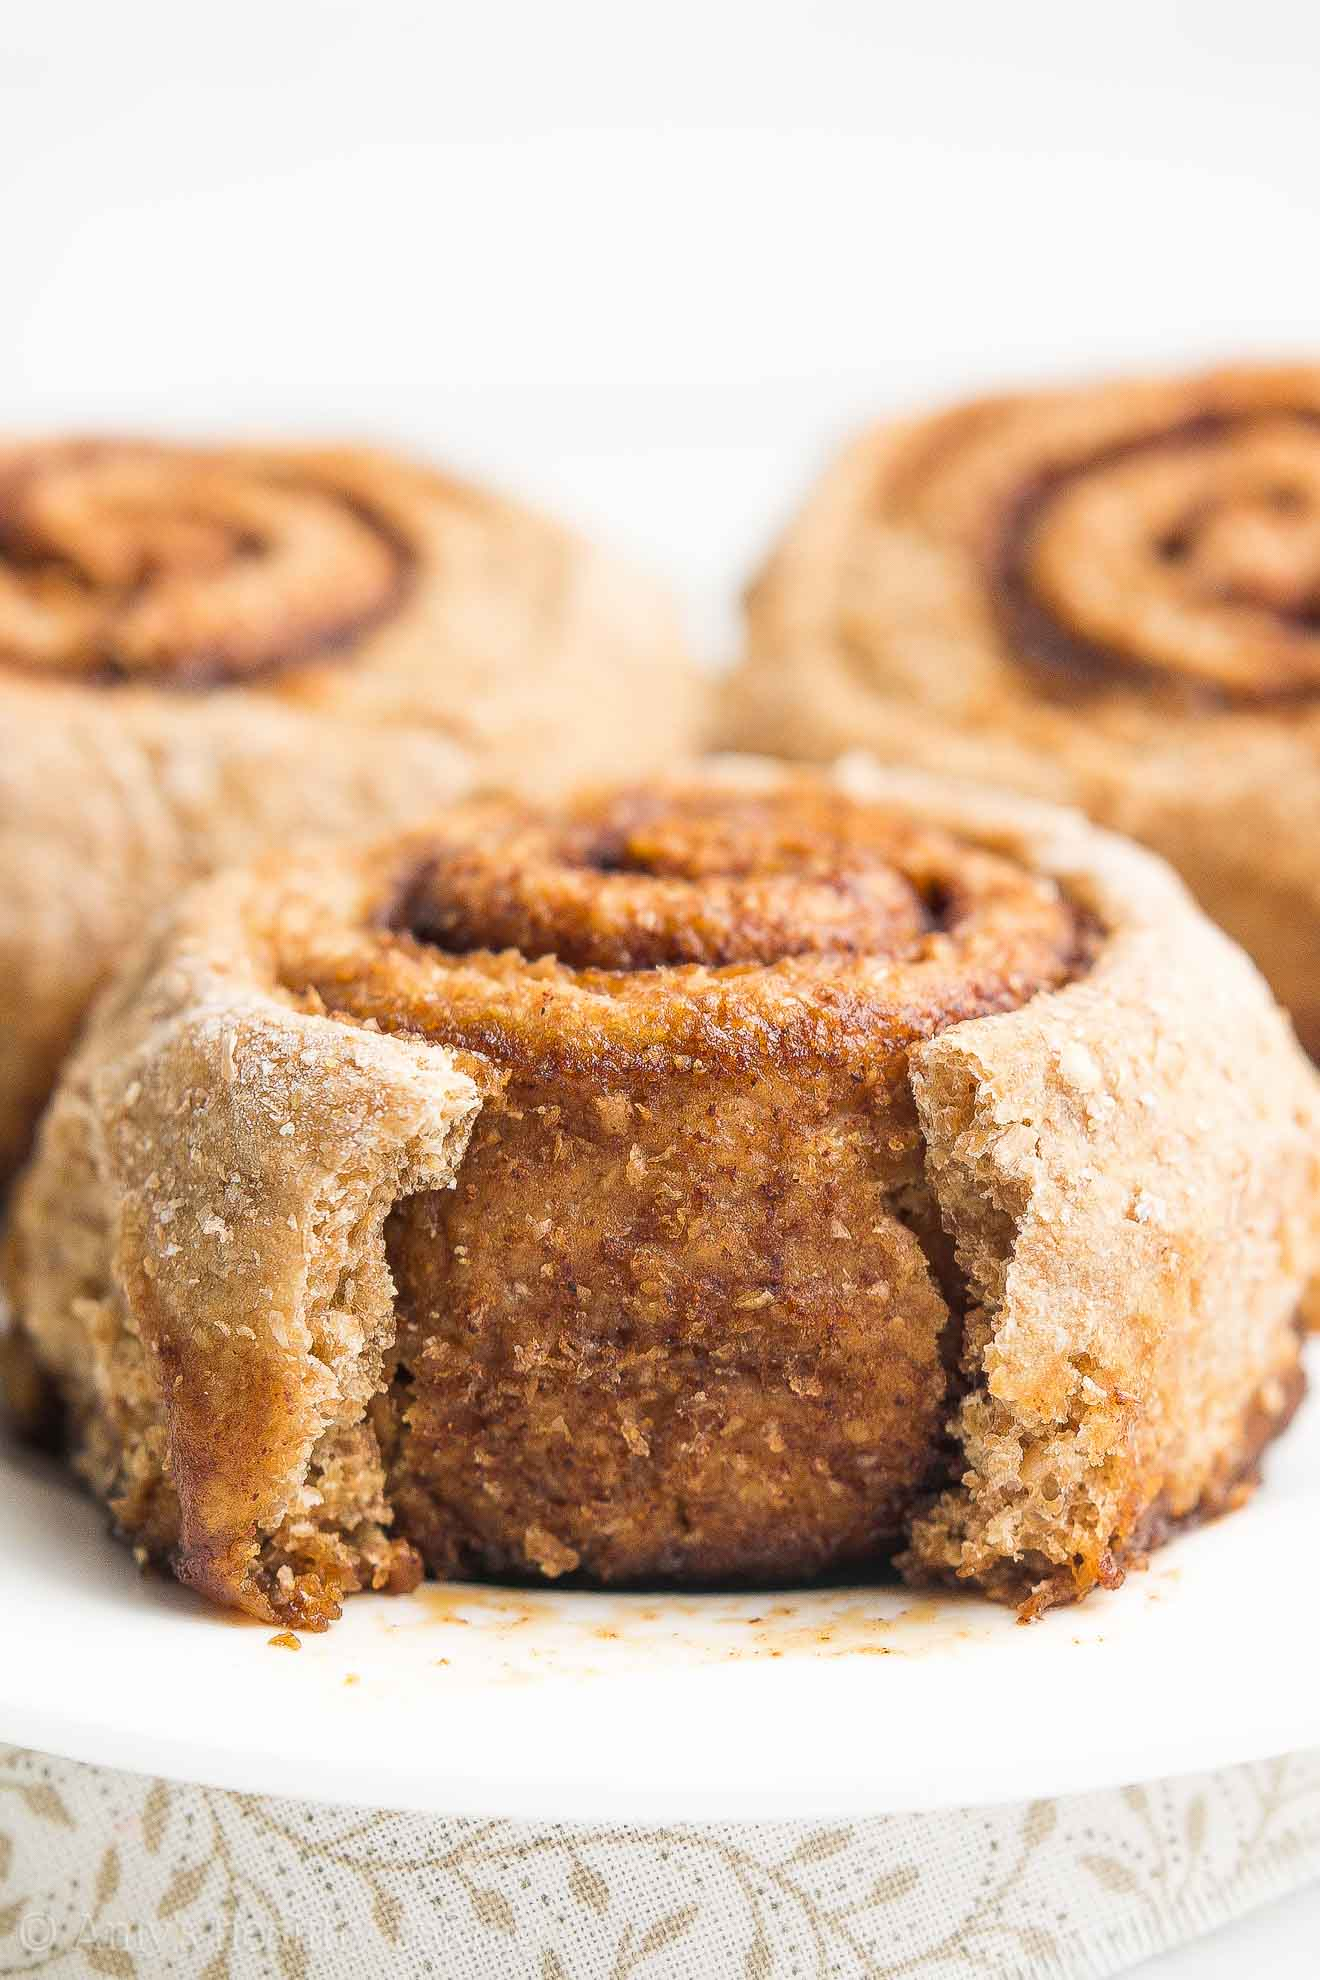 cinnamon rolls Add our famous 3-pound cinnamon rolls to your must-try list a picture's worth a thousand words, or at least a taste or two our must-have treat recently received national attention as a san antonio staple in a buzzfeed food video.